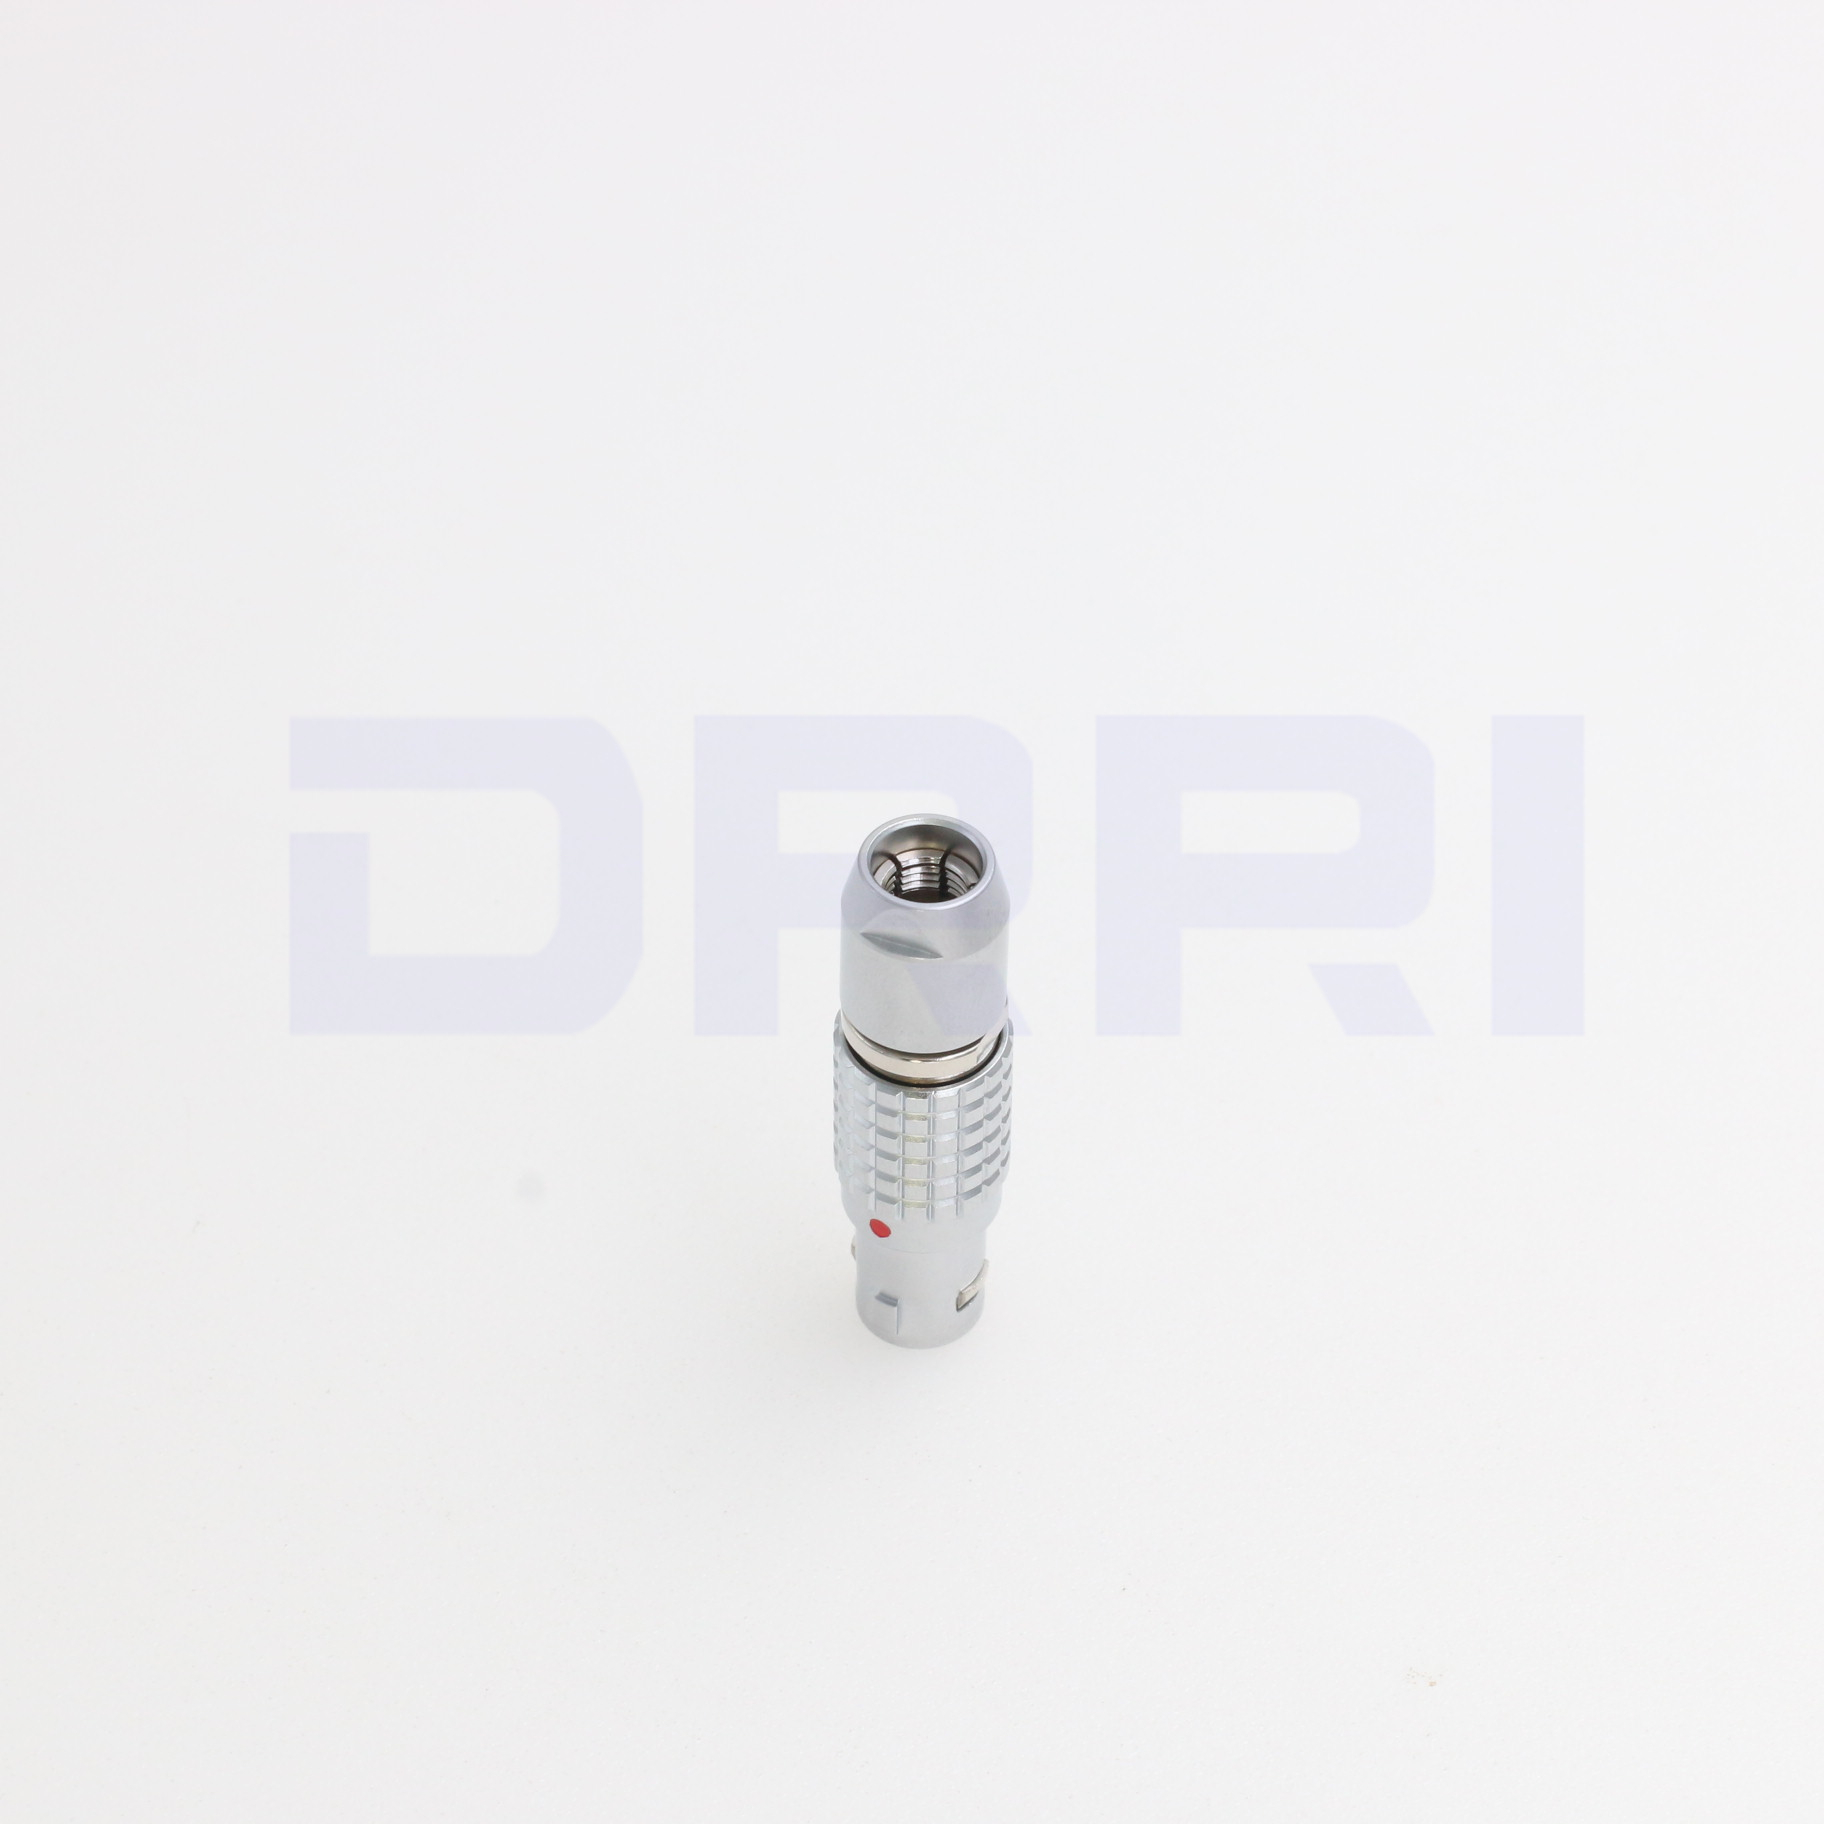 Image 4 - 0B PHG FGG 2 3 4 5 6 7 9 pin push pull metal connector without bend reliefConnectors   -